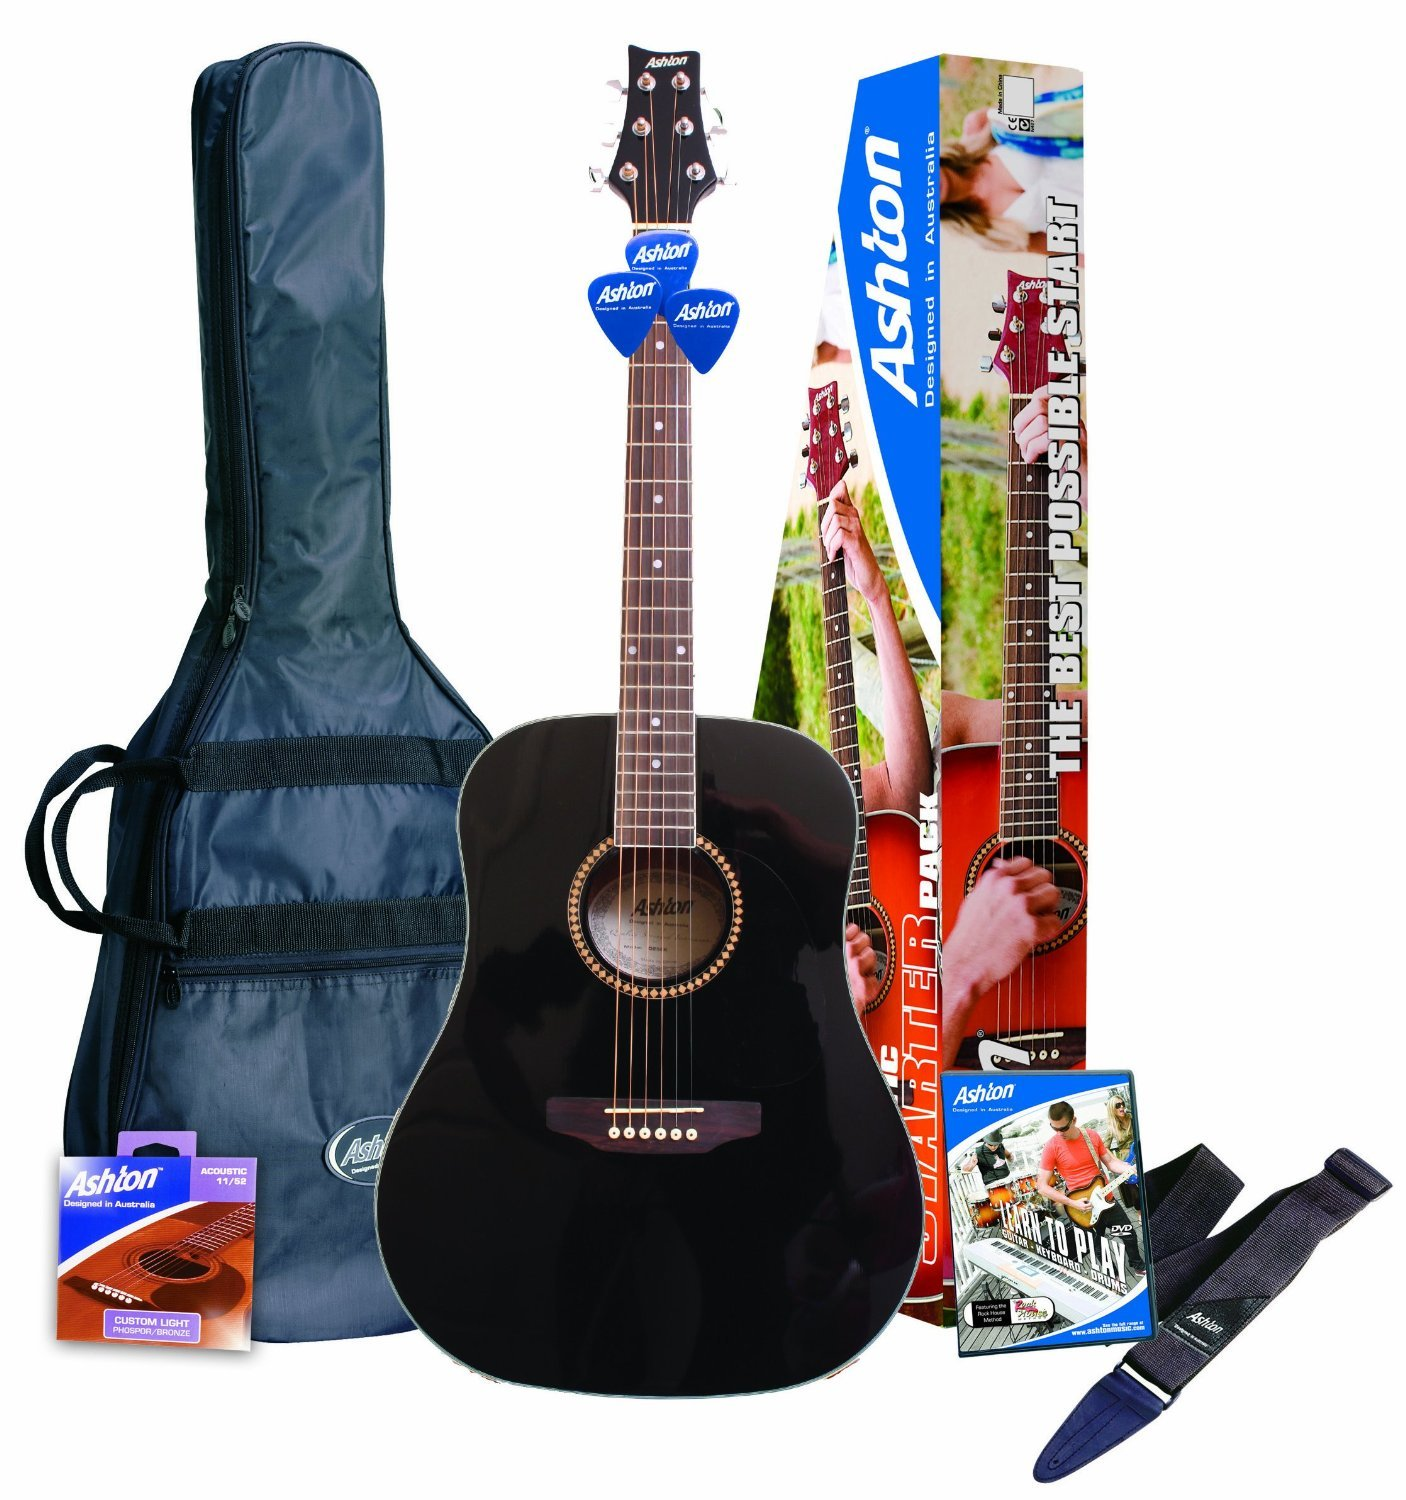 ashton spd25bk acoustic guitar starter pack musical